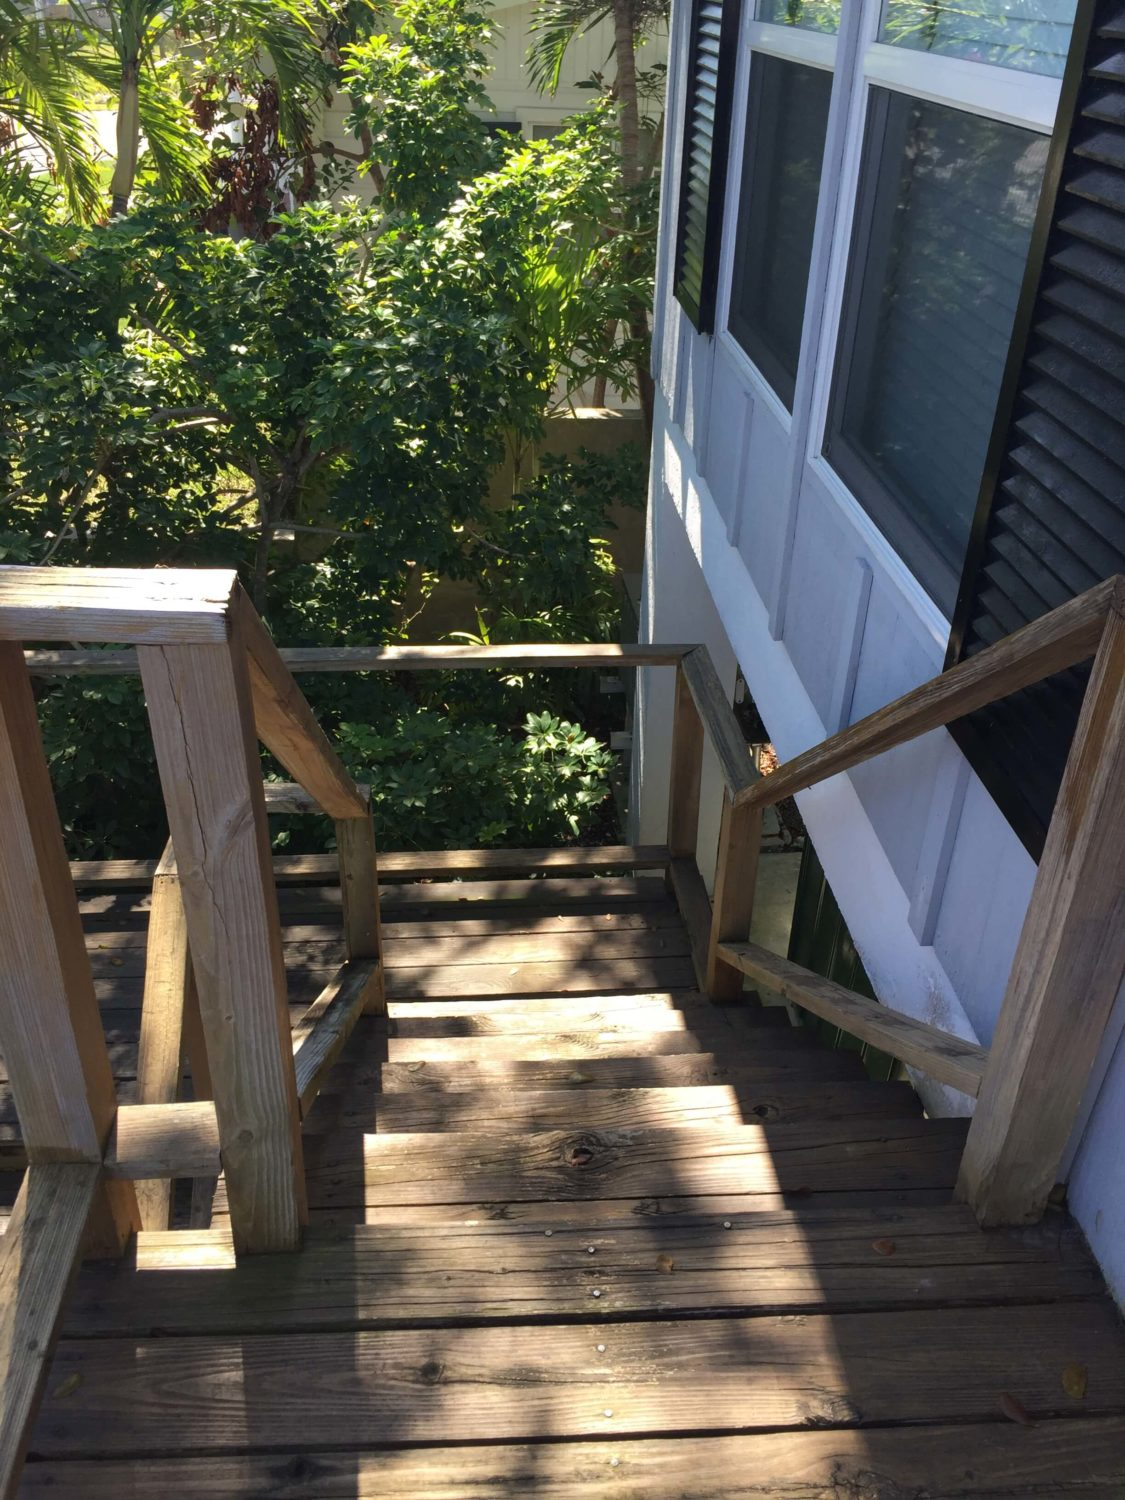 Stair Replacement Before Photo - Treads and Rails